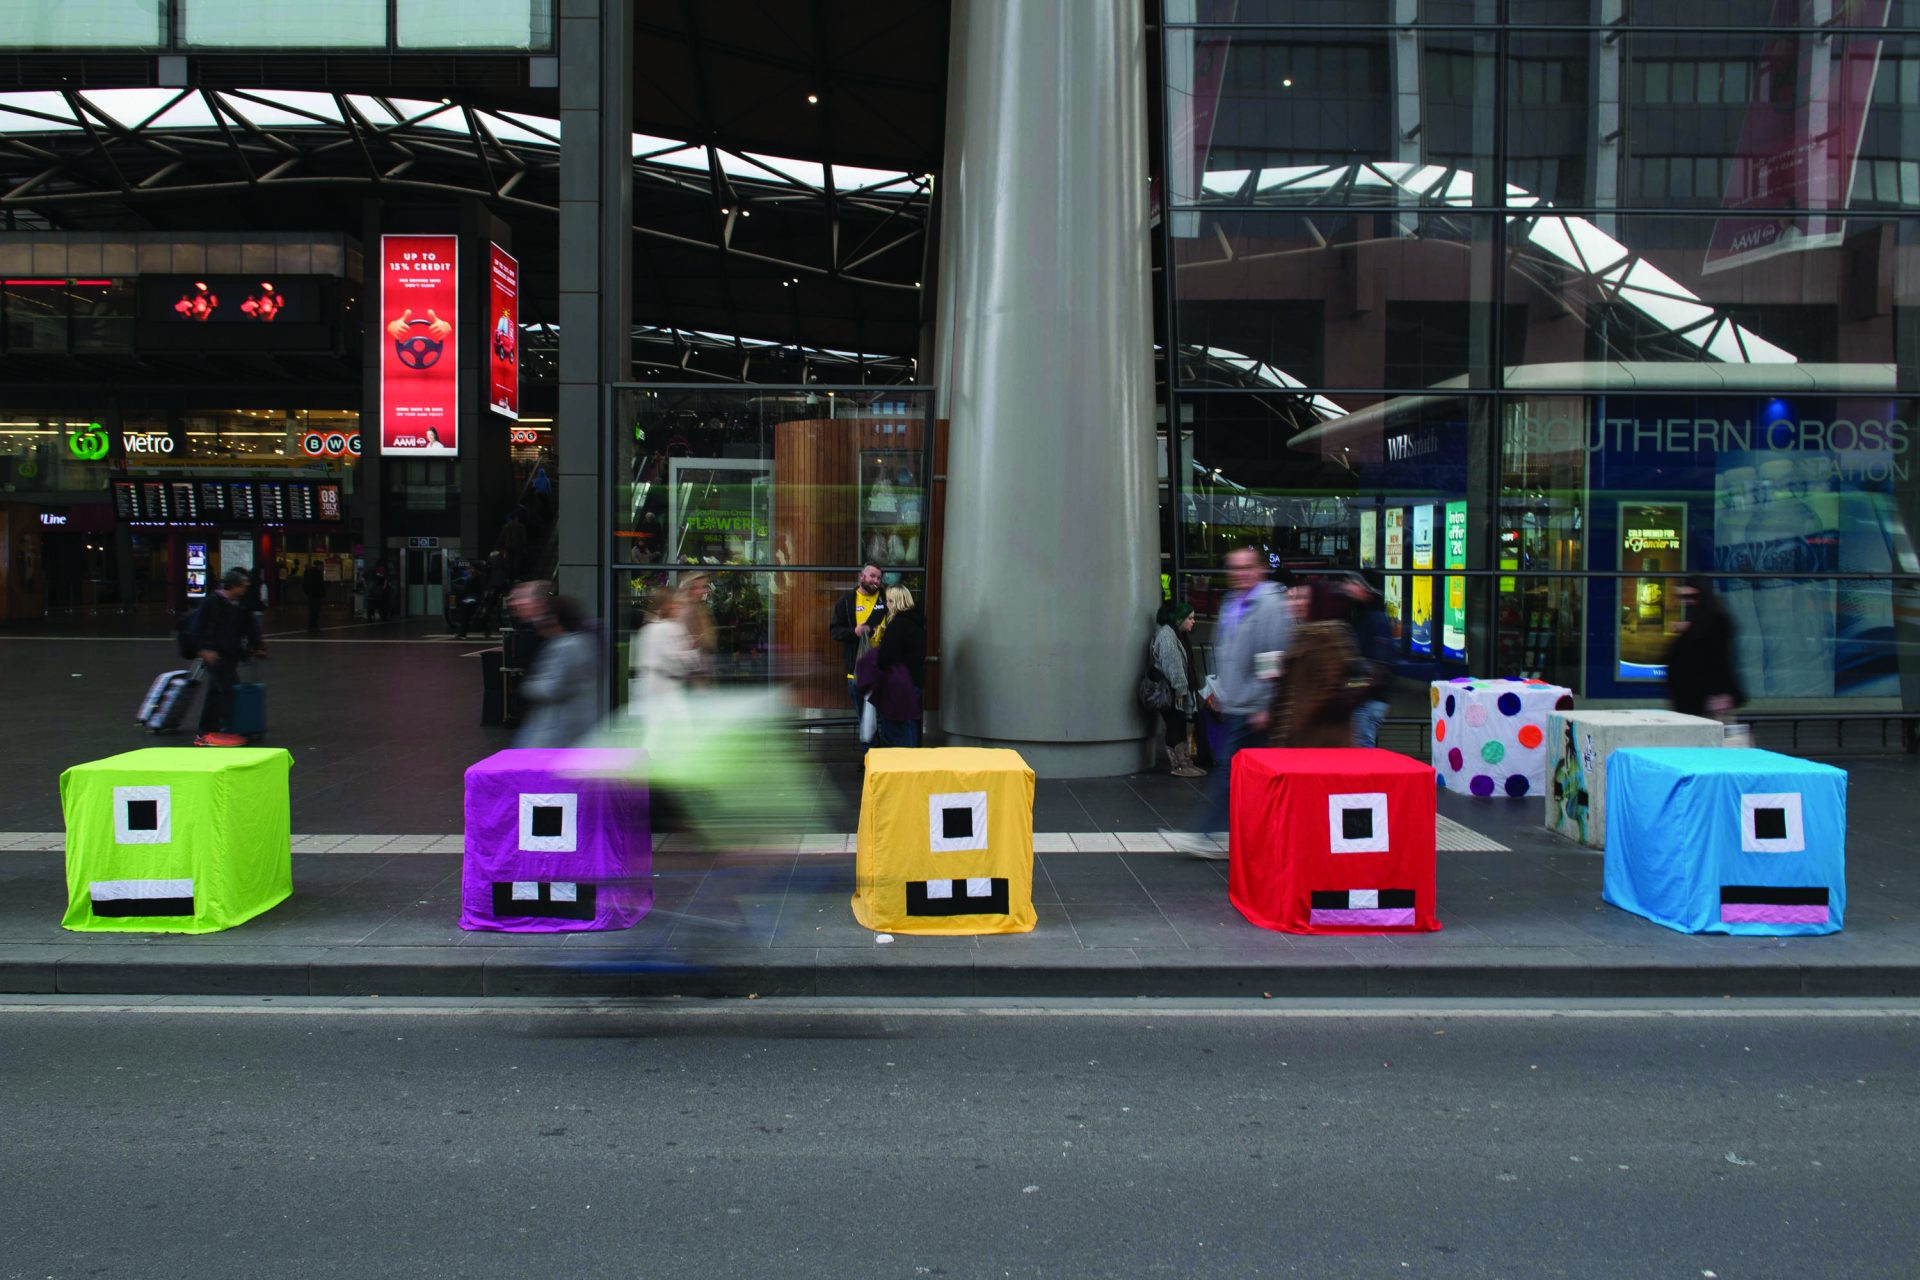 concrete bollards were installed throughout central Melbourne